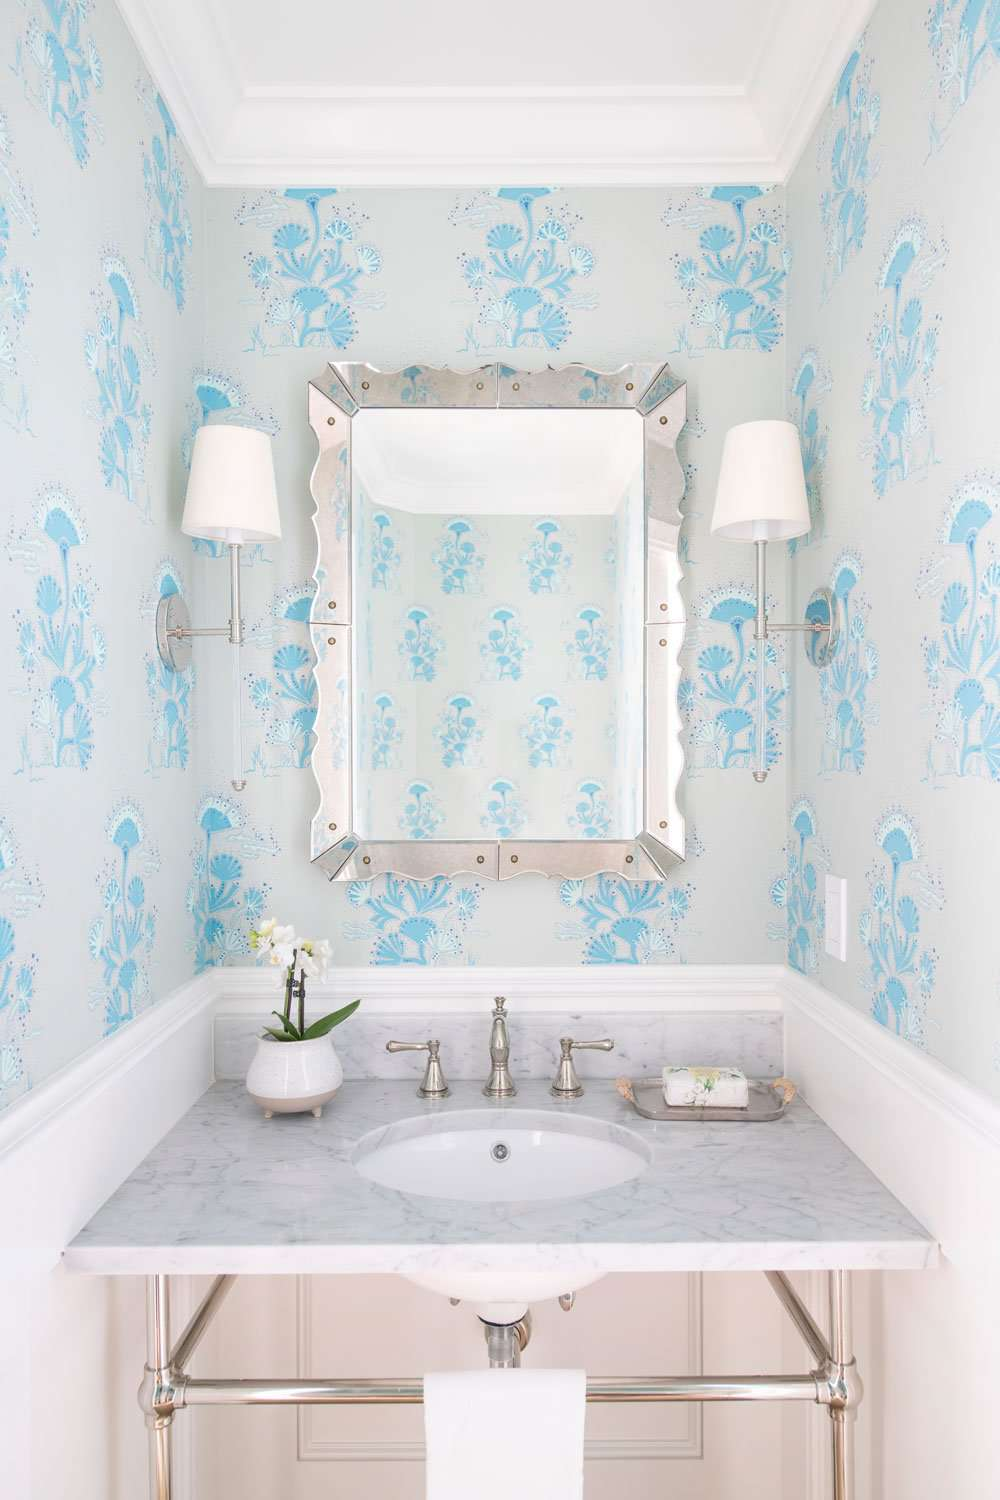 Bathroom with light blue floral wallpaper.